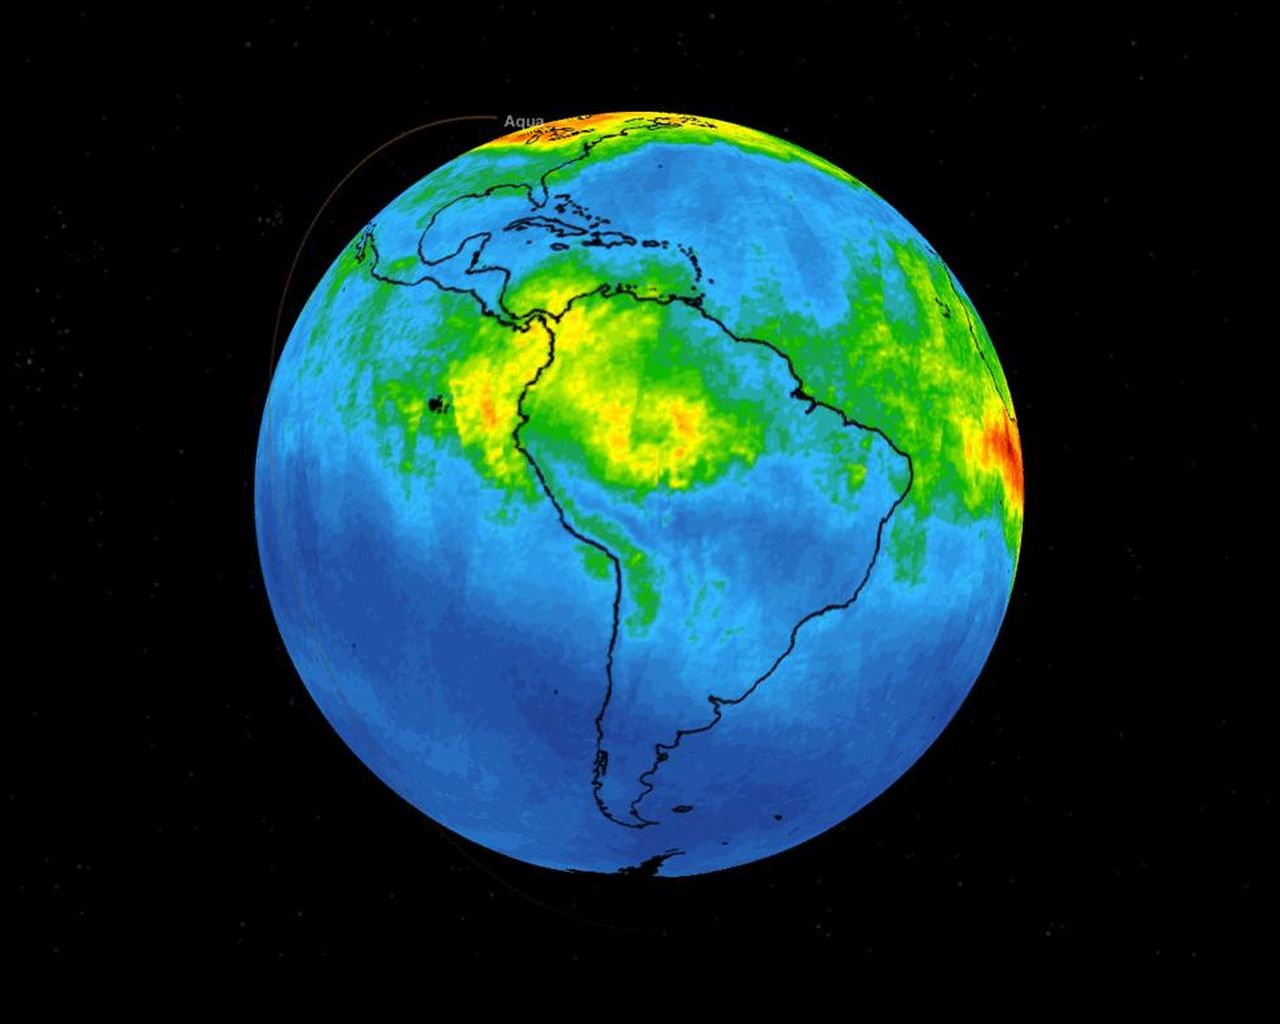 Space Images NASAs AIRS Maps Carbon Monoxide from Brazil Fires 1280x1024